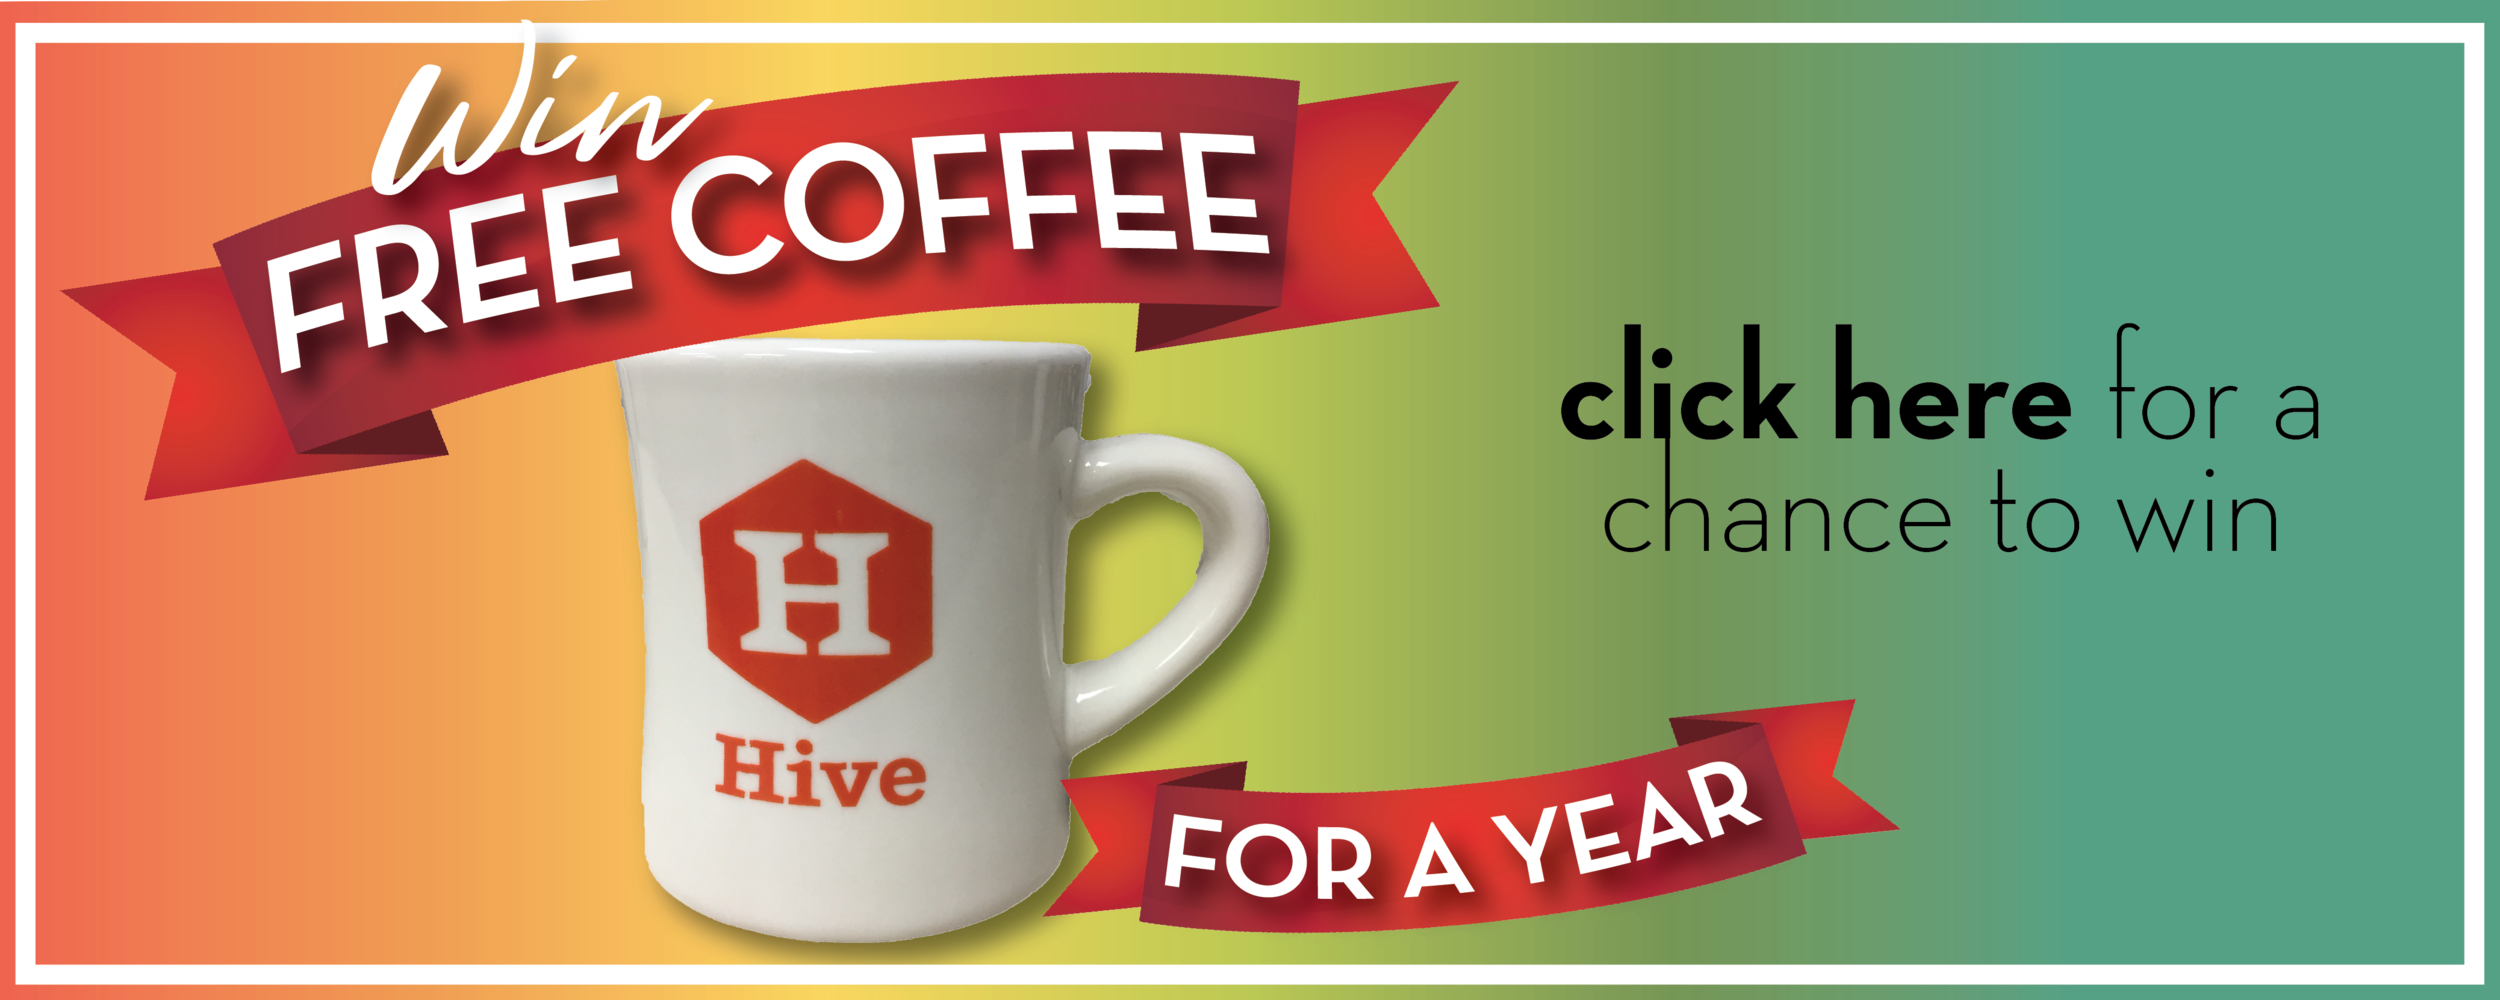 Free Coffee for a Year_Web Slider copy.png